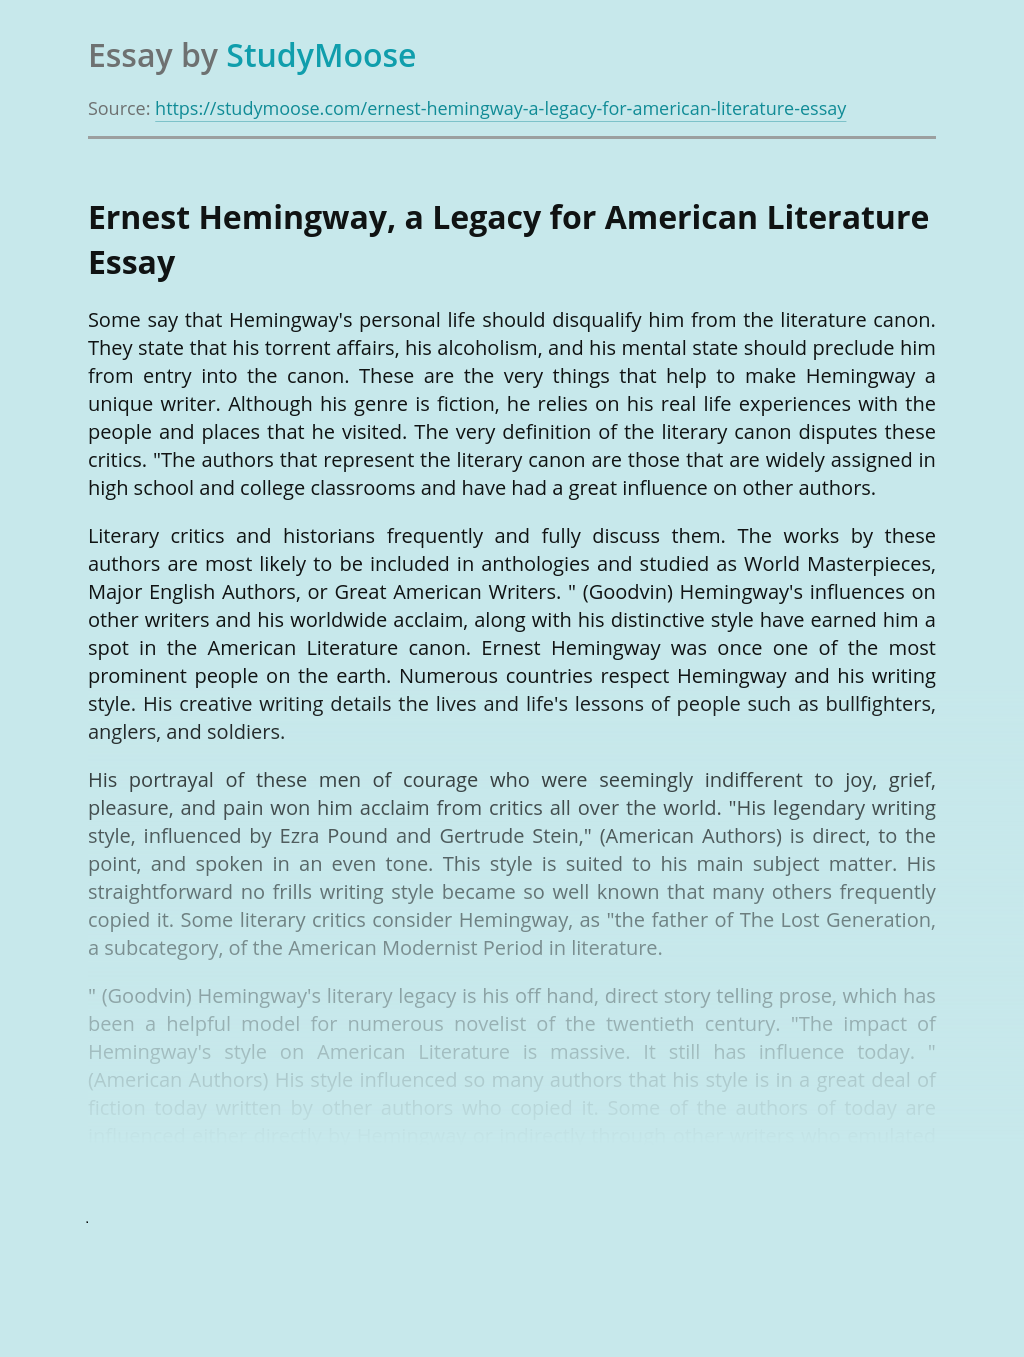 Ernest Hemingway, a Legacy for American Literature